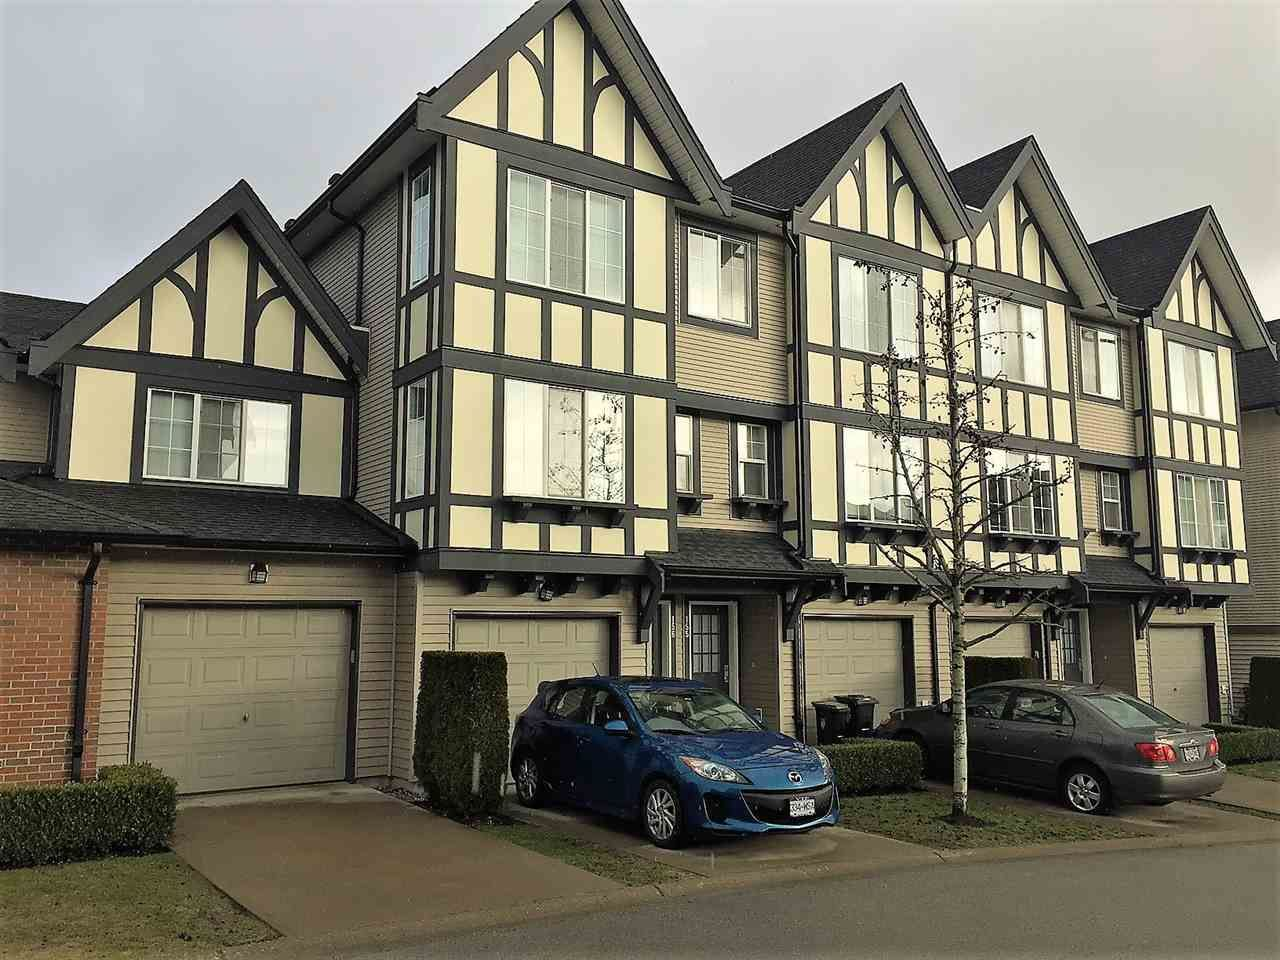 """Main Photo: 156 20875 80 Avenue in Langley: Willoughby Heights Townhouse for sale in """"PEPPERWOOD"""" : MLS®# R2143367"""